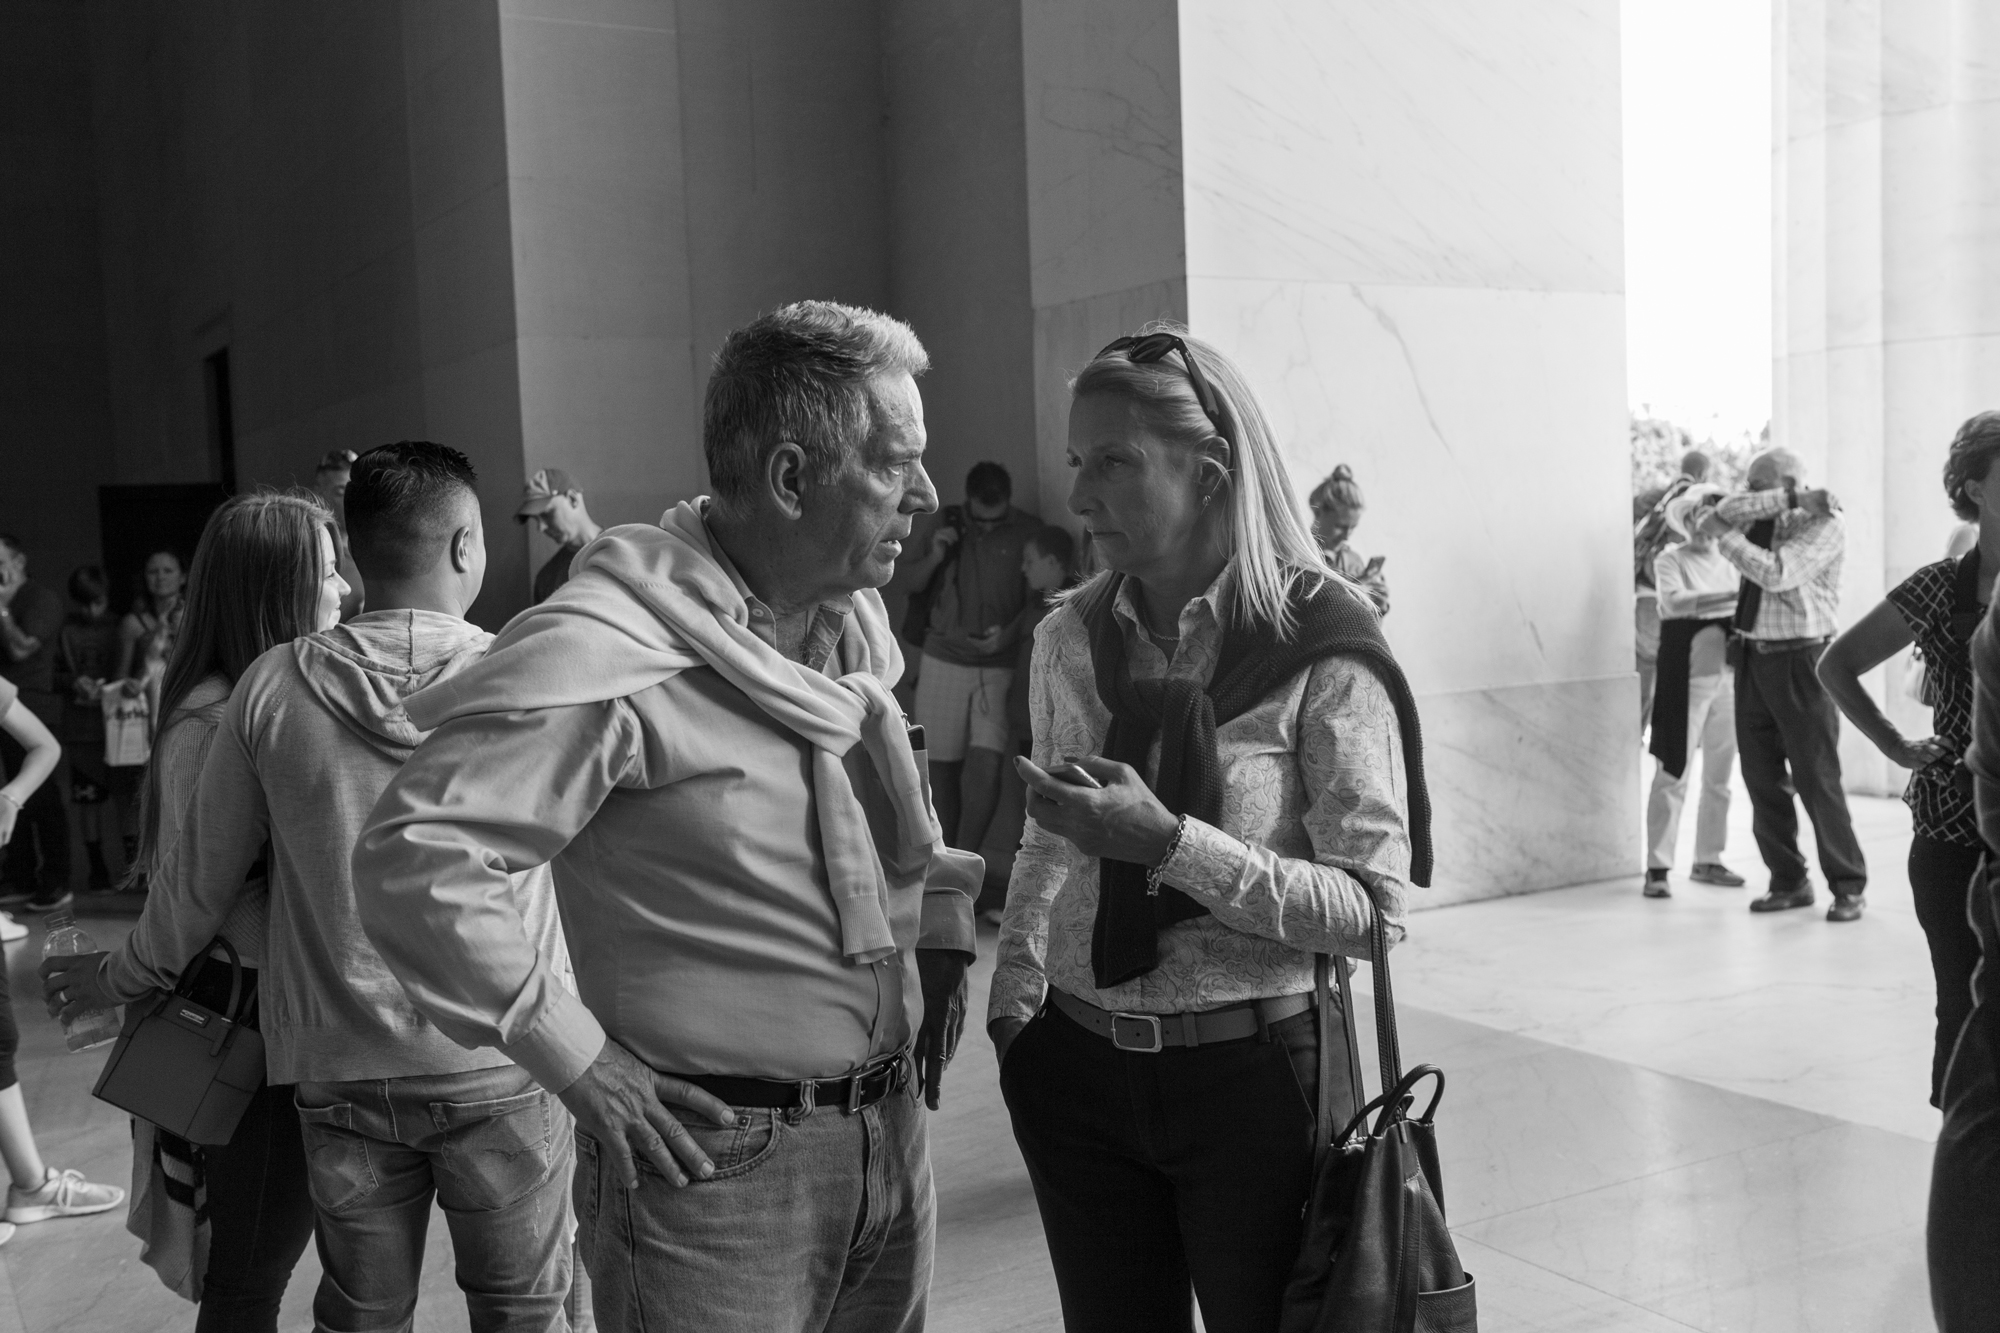 couple_looking_lincoln_MG_7338.jpg